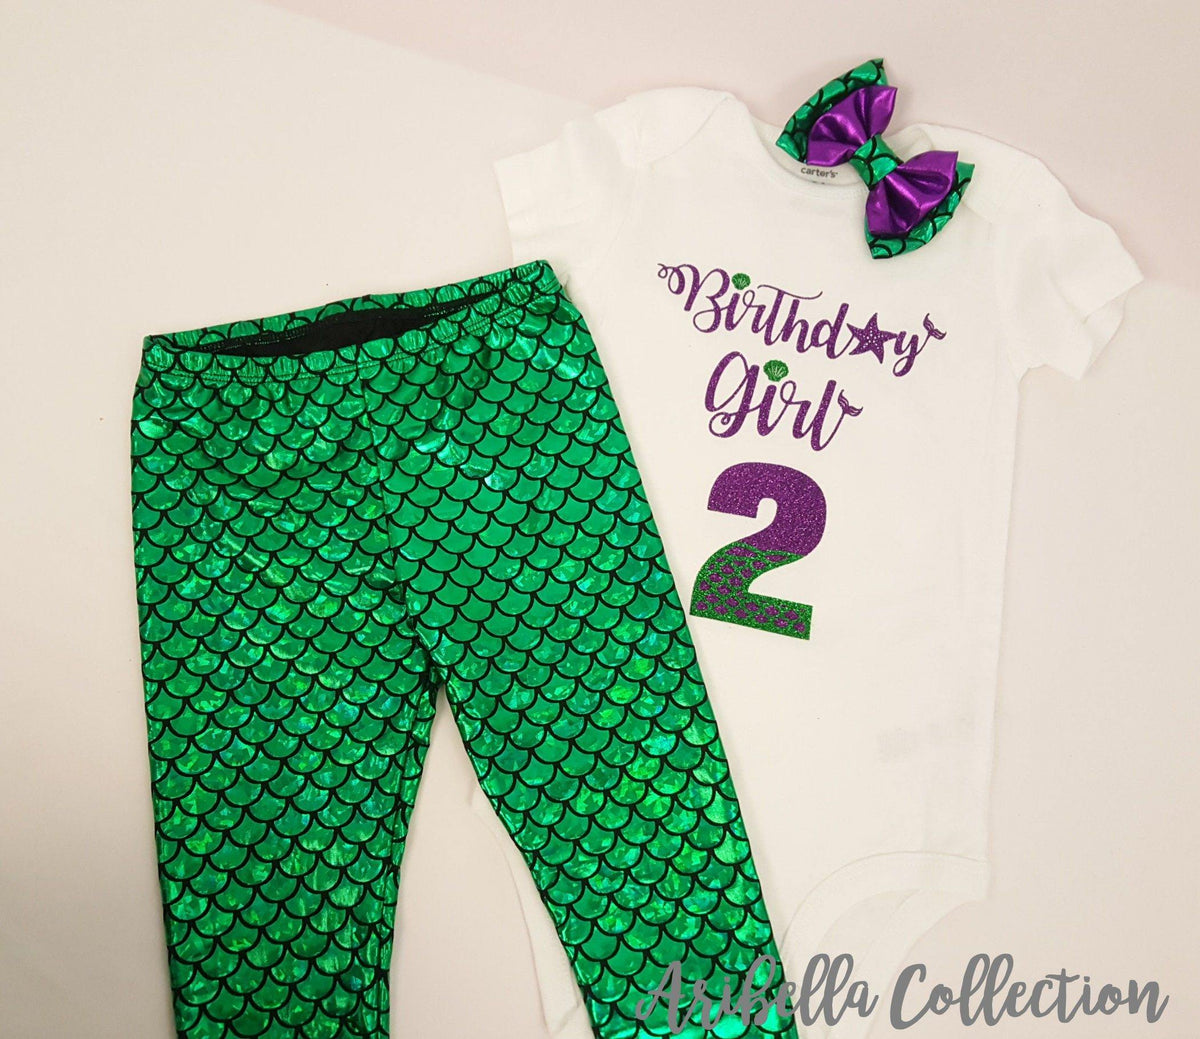 8ca83ddd212 Birthday Girl Outfit - Bodysuit or T-shirt, Legging, & Hair Clip Bow –  Aribella Collection, Inc.